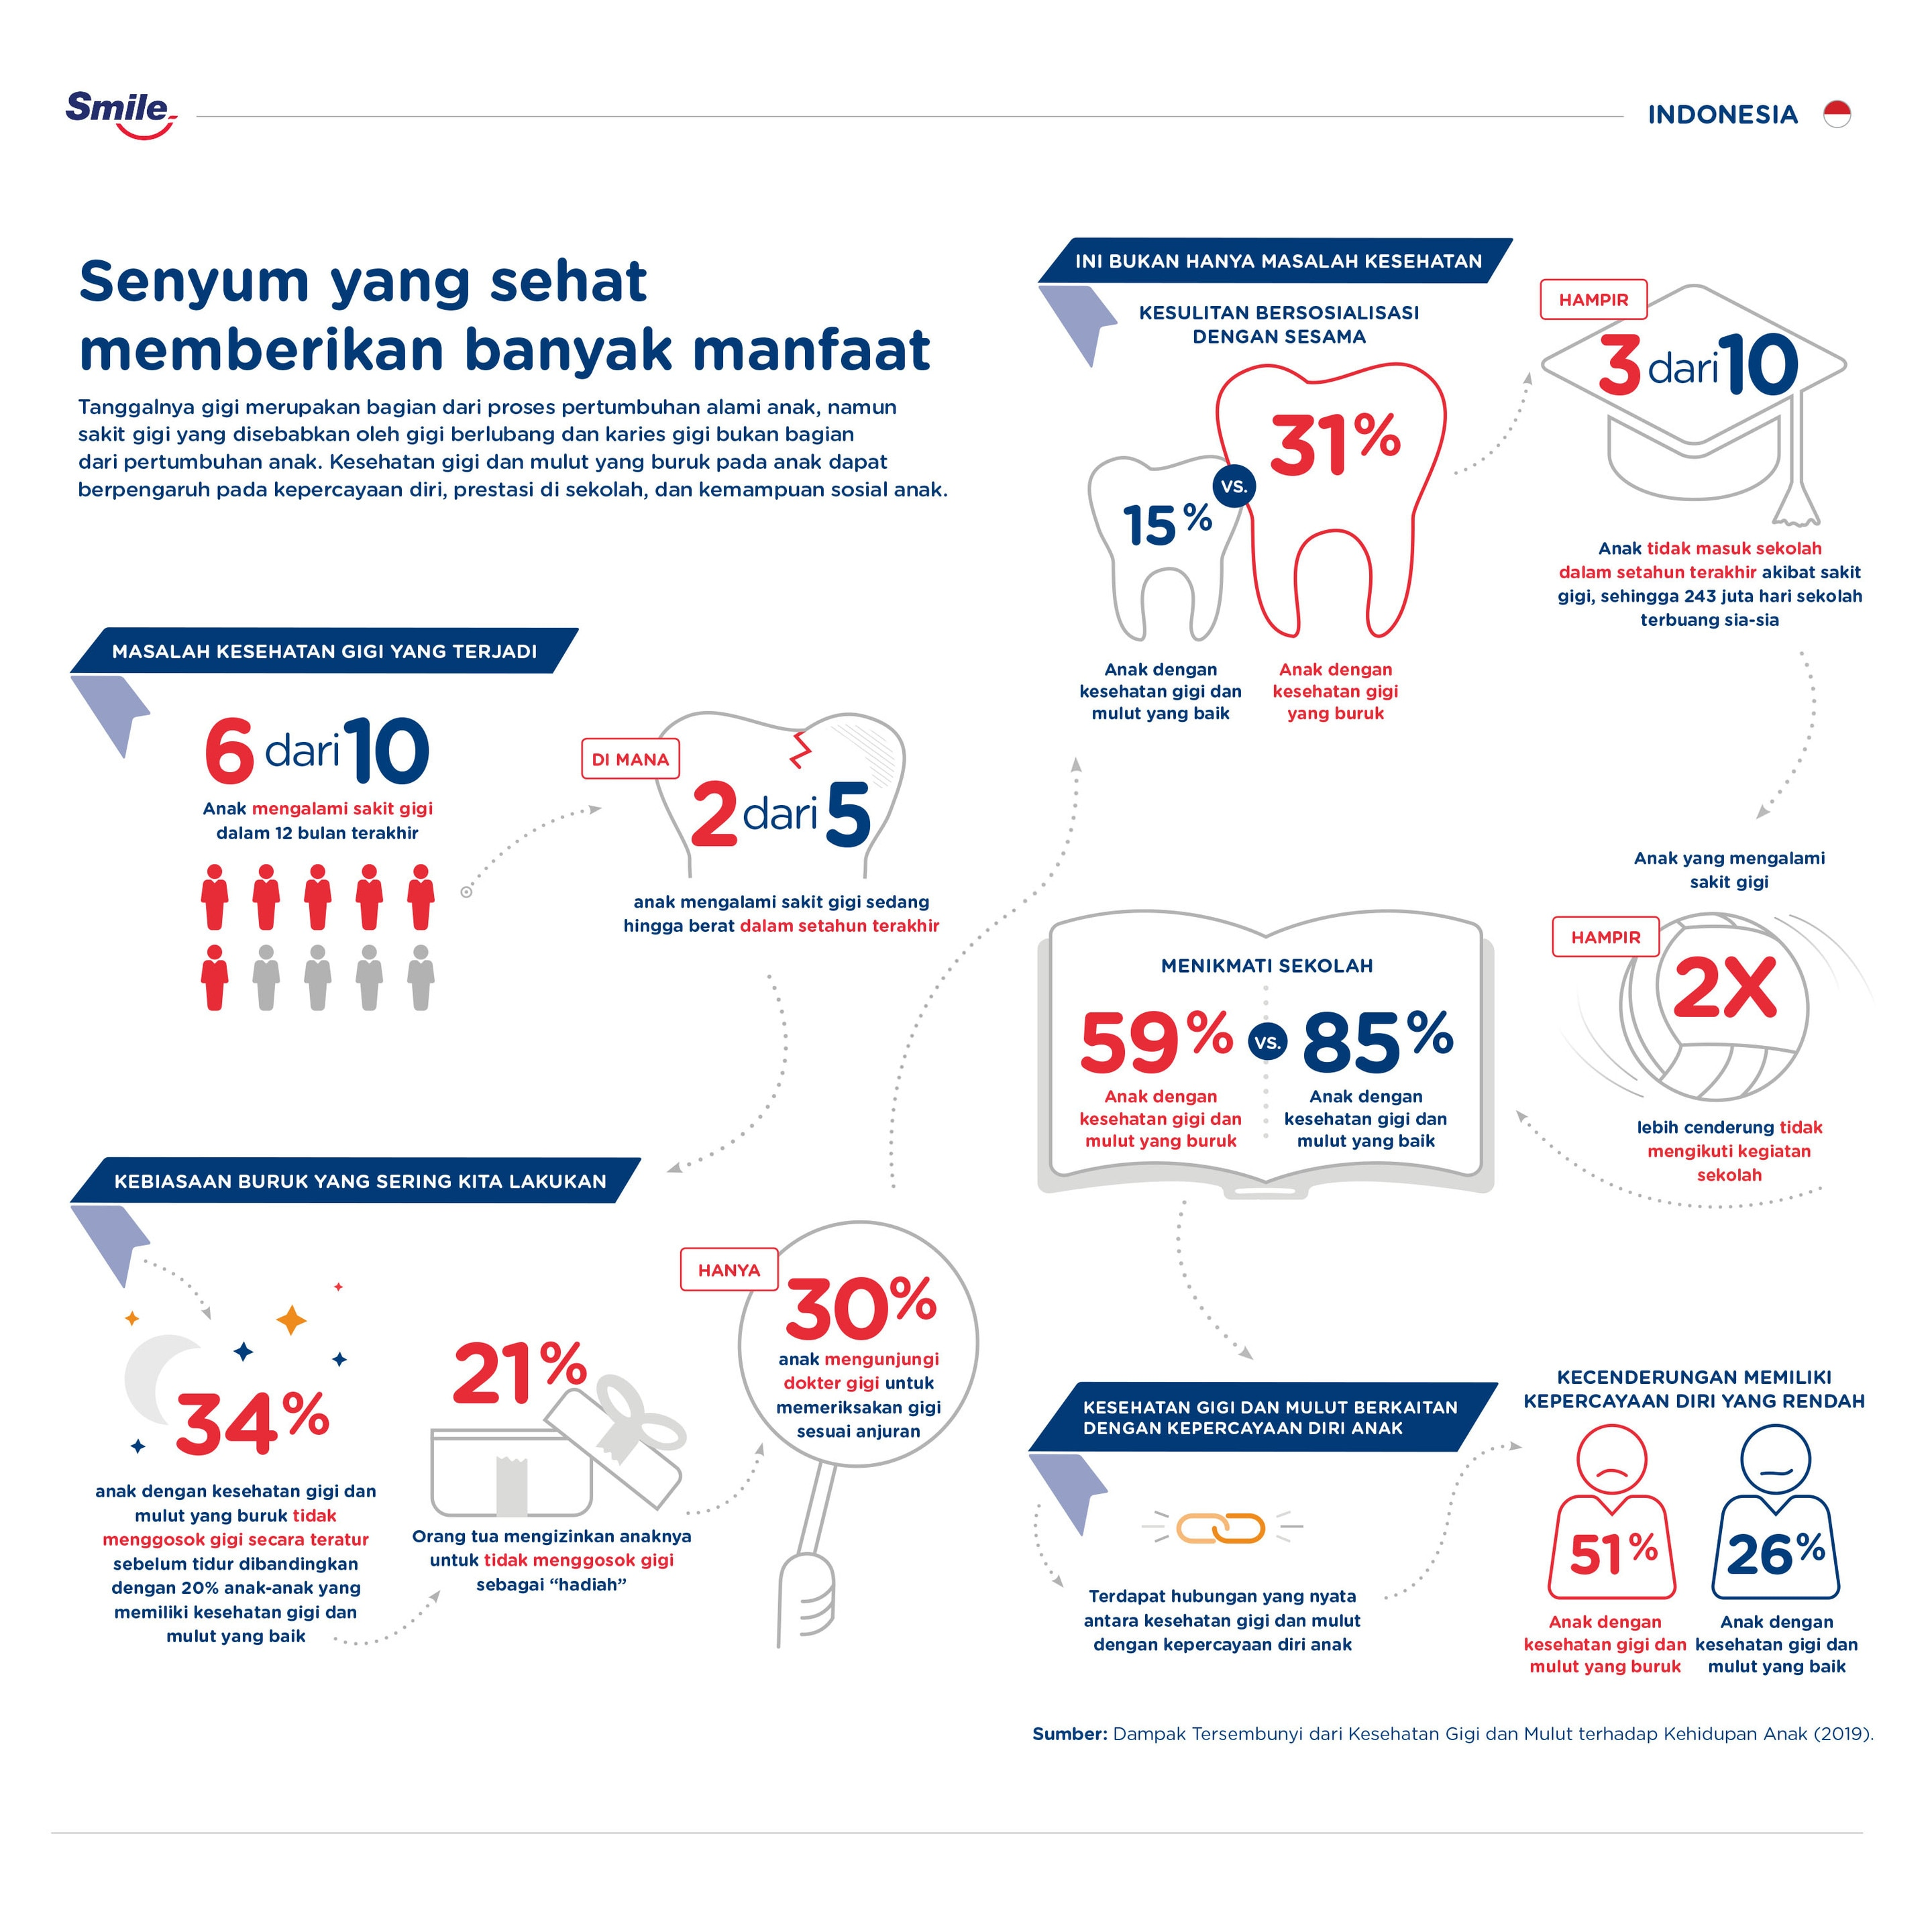 Misi Sosial infographic